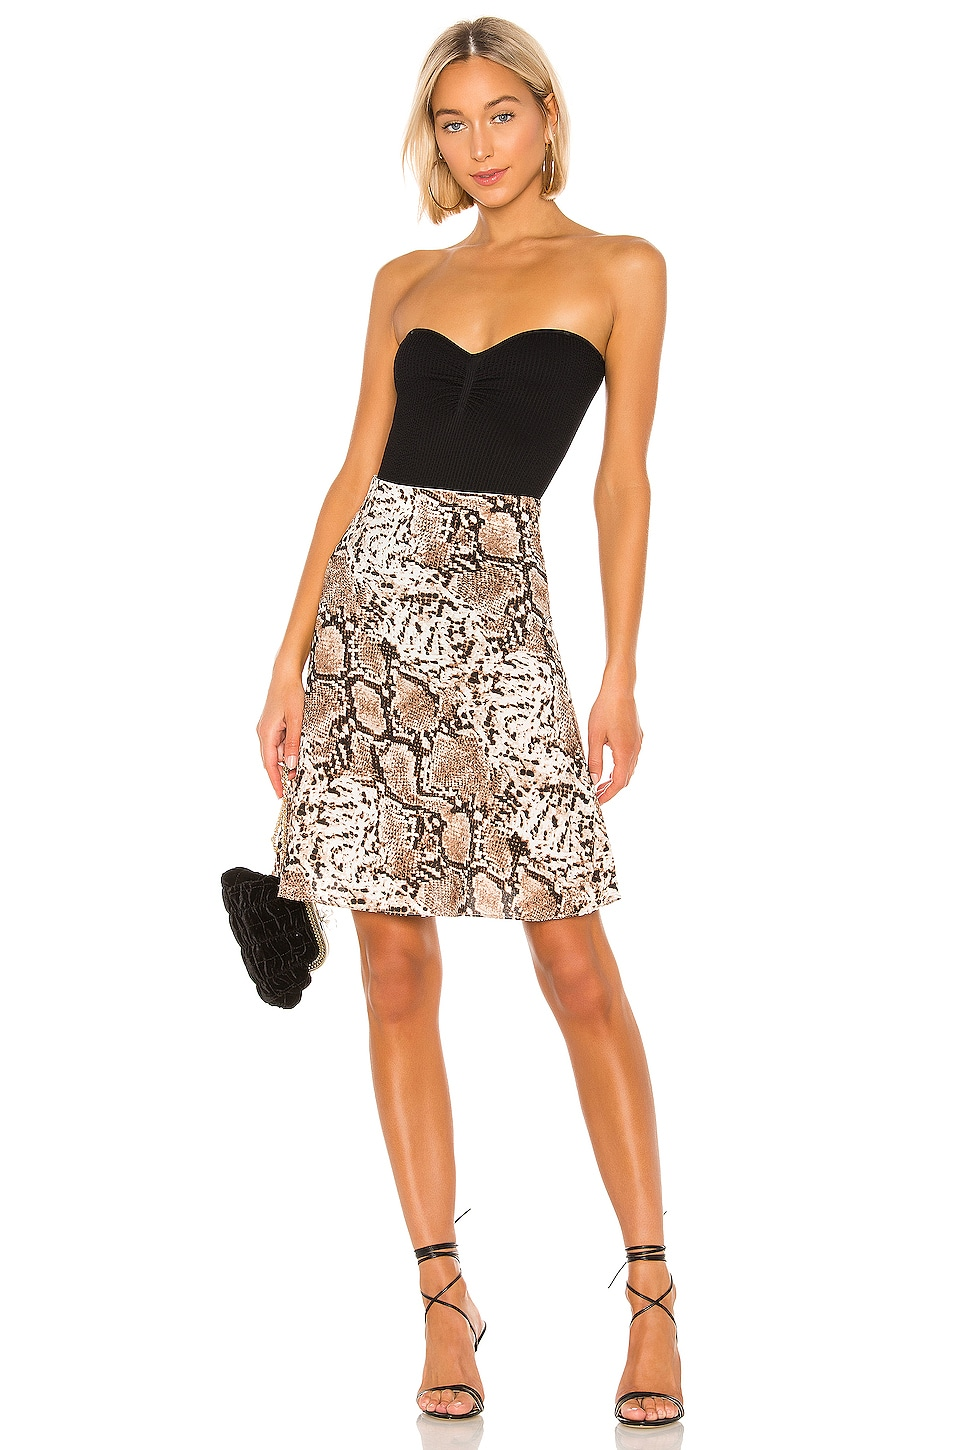 Rudy Skirt, view 4, click to view large image.